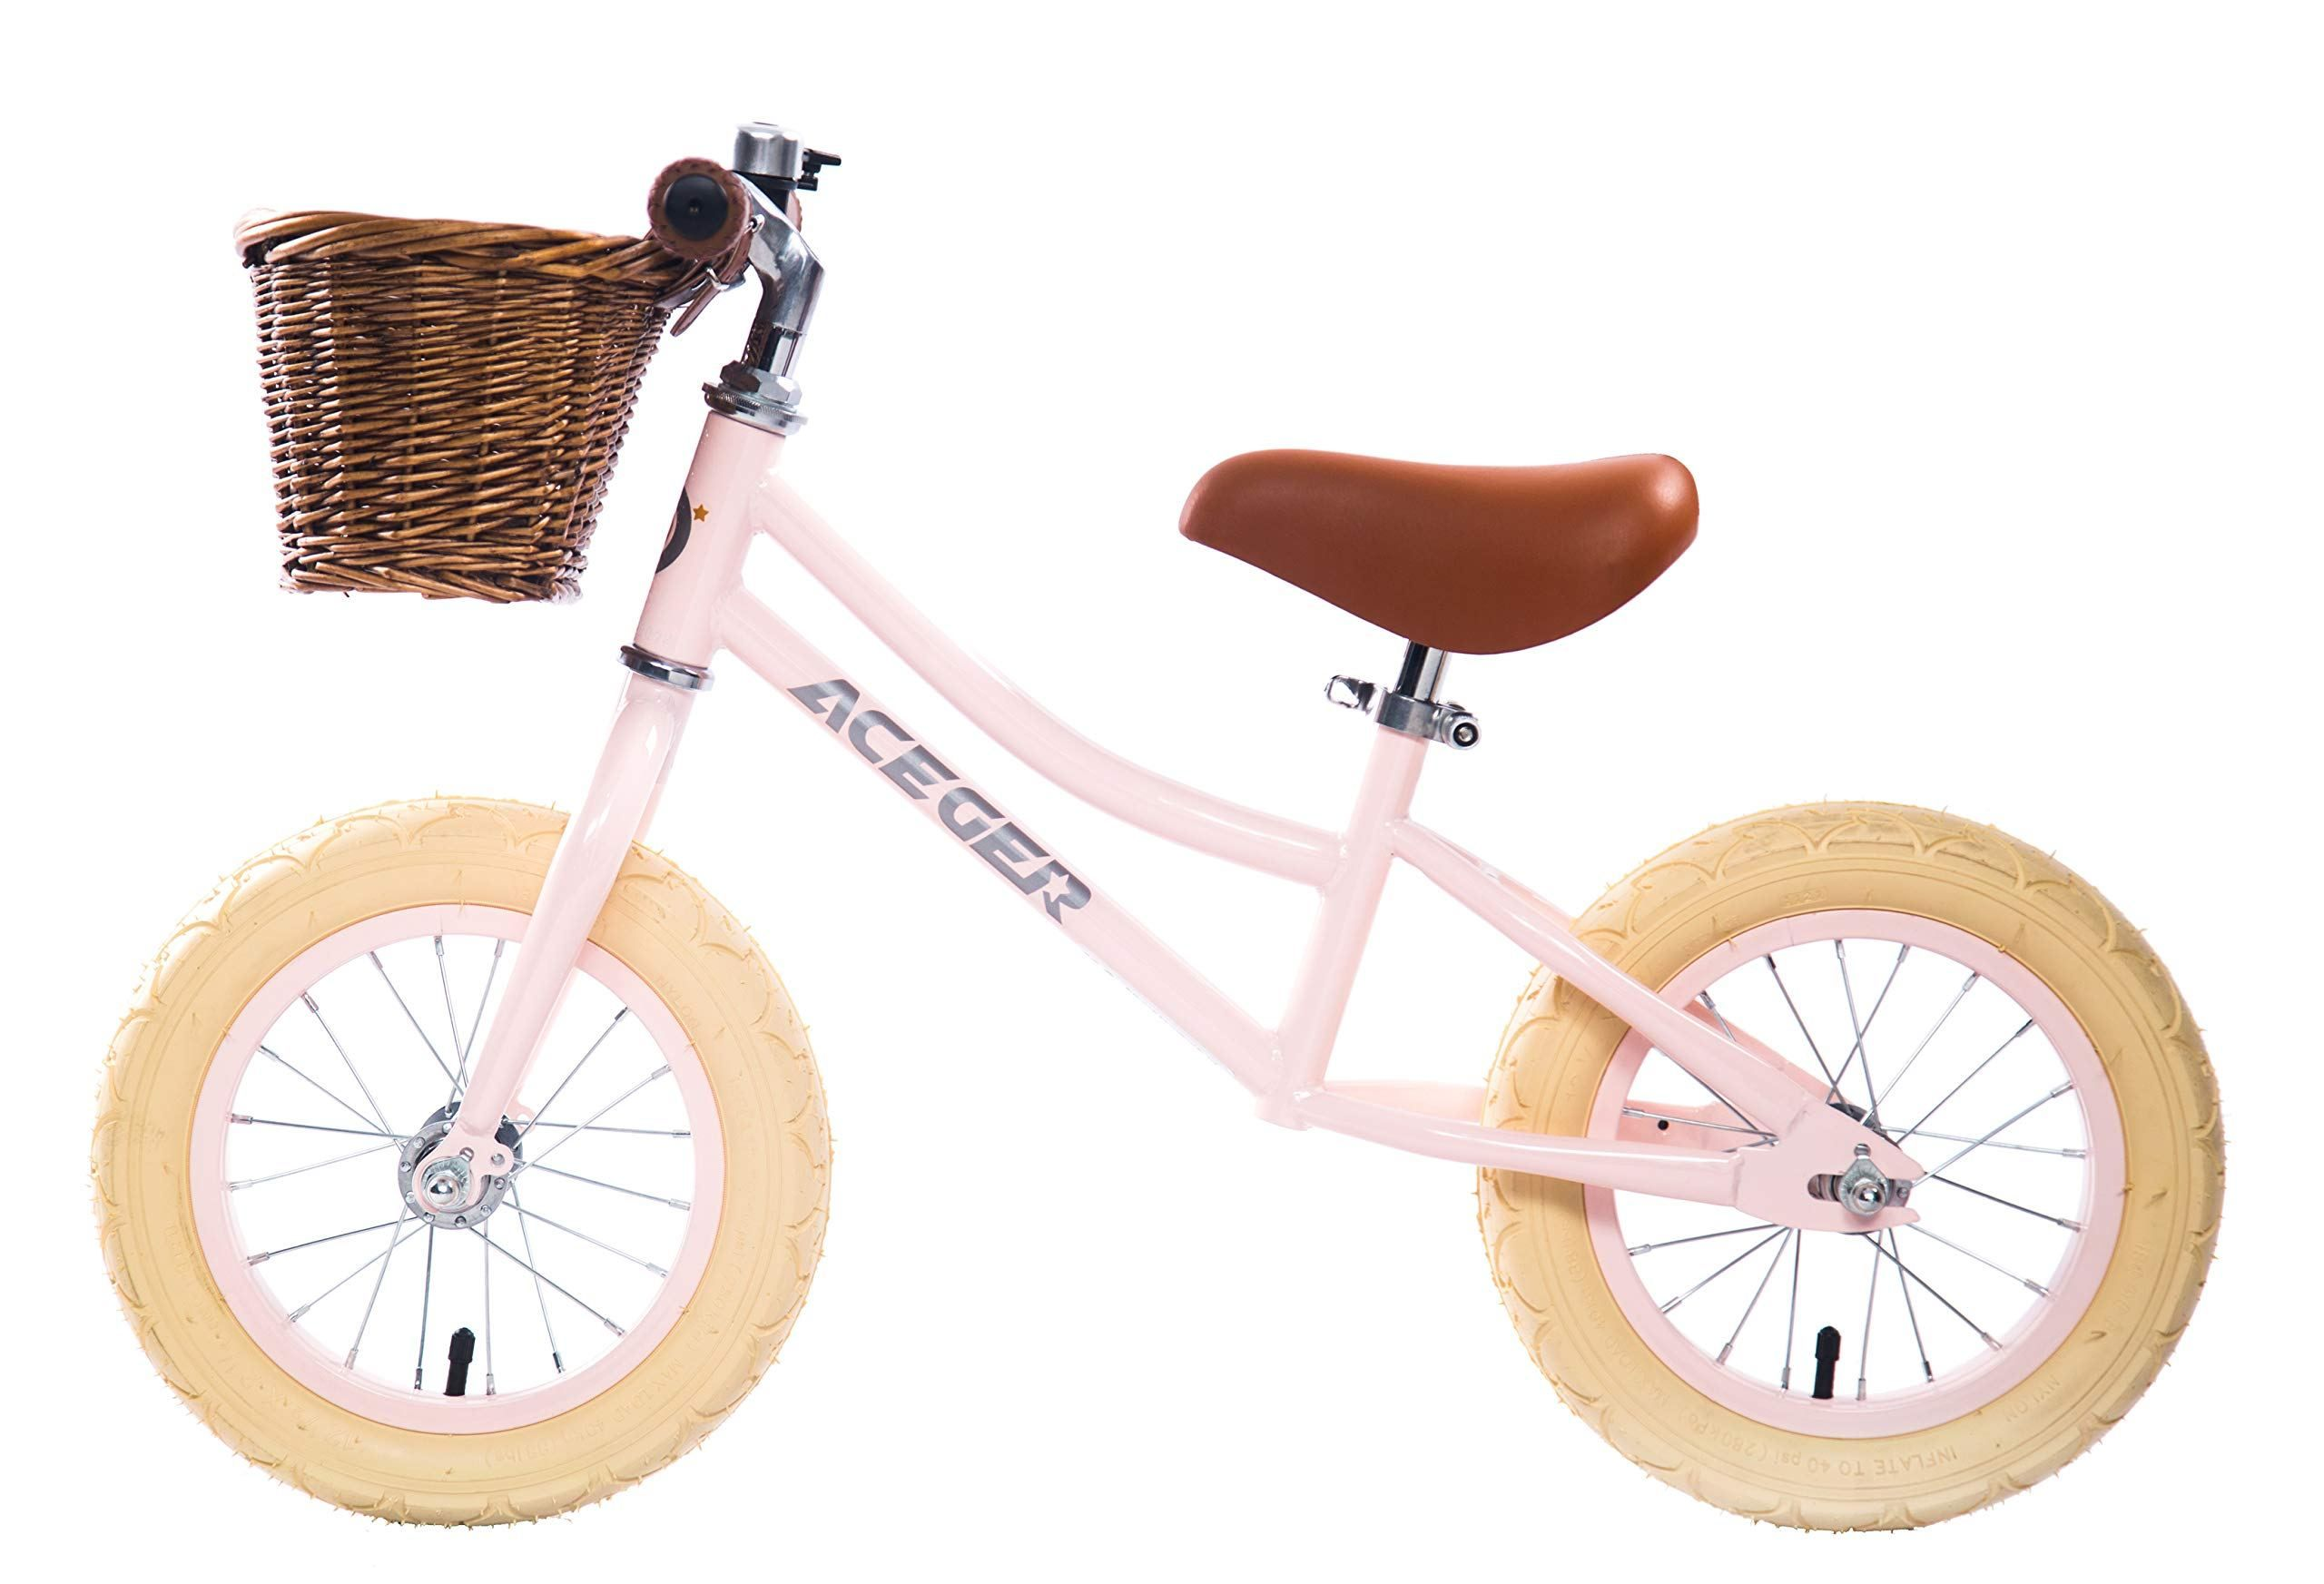 Aceger Balance Bike For Kids Lightweight With Basket Ages 2 To 5